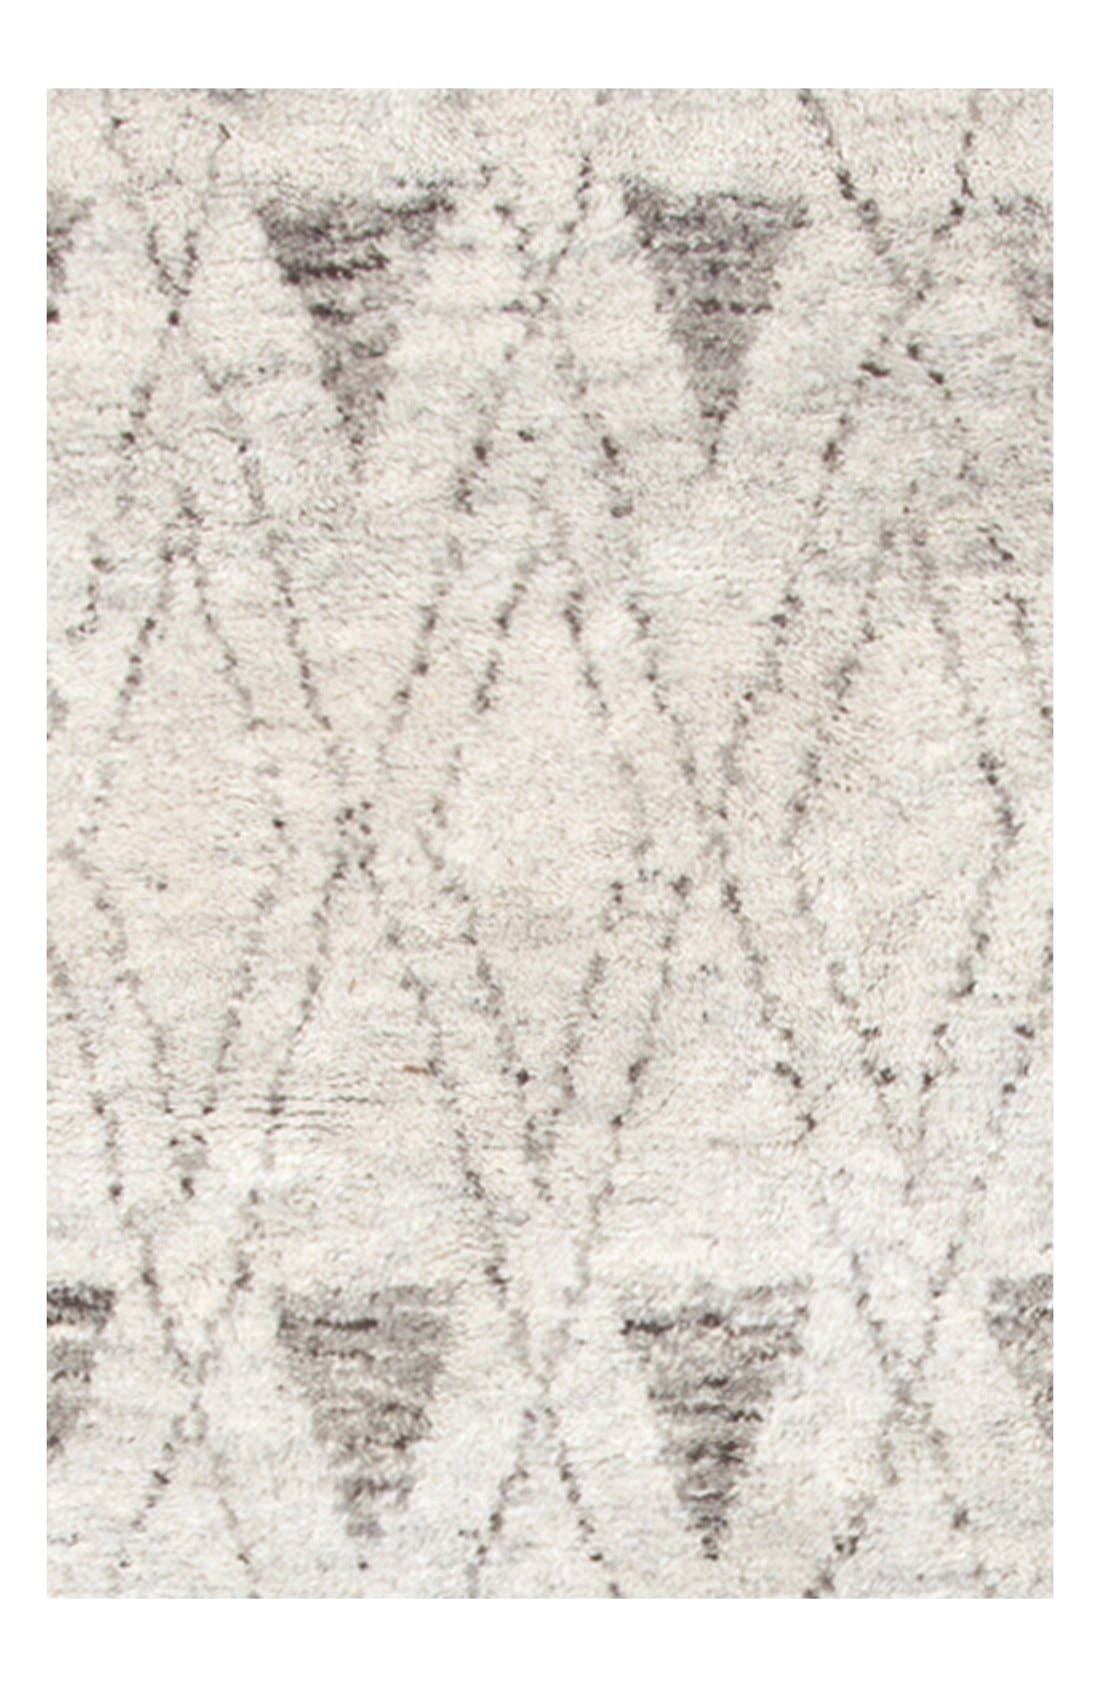 'Masinissa' Hand Knotted Rug,                             Main thumbnail 1, color,                             GREY/ MULTI